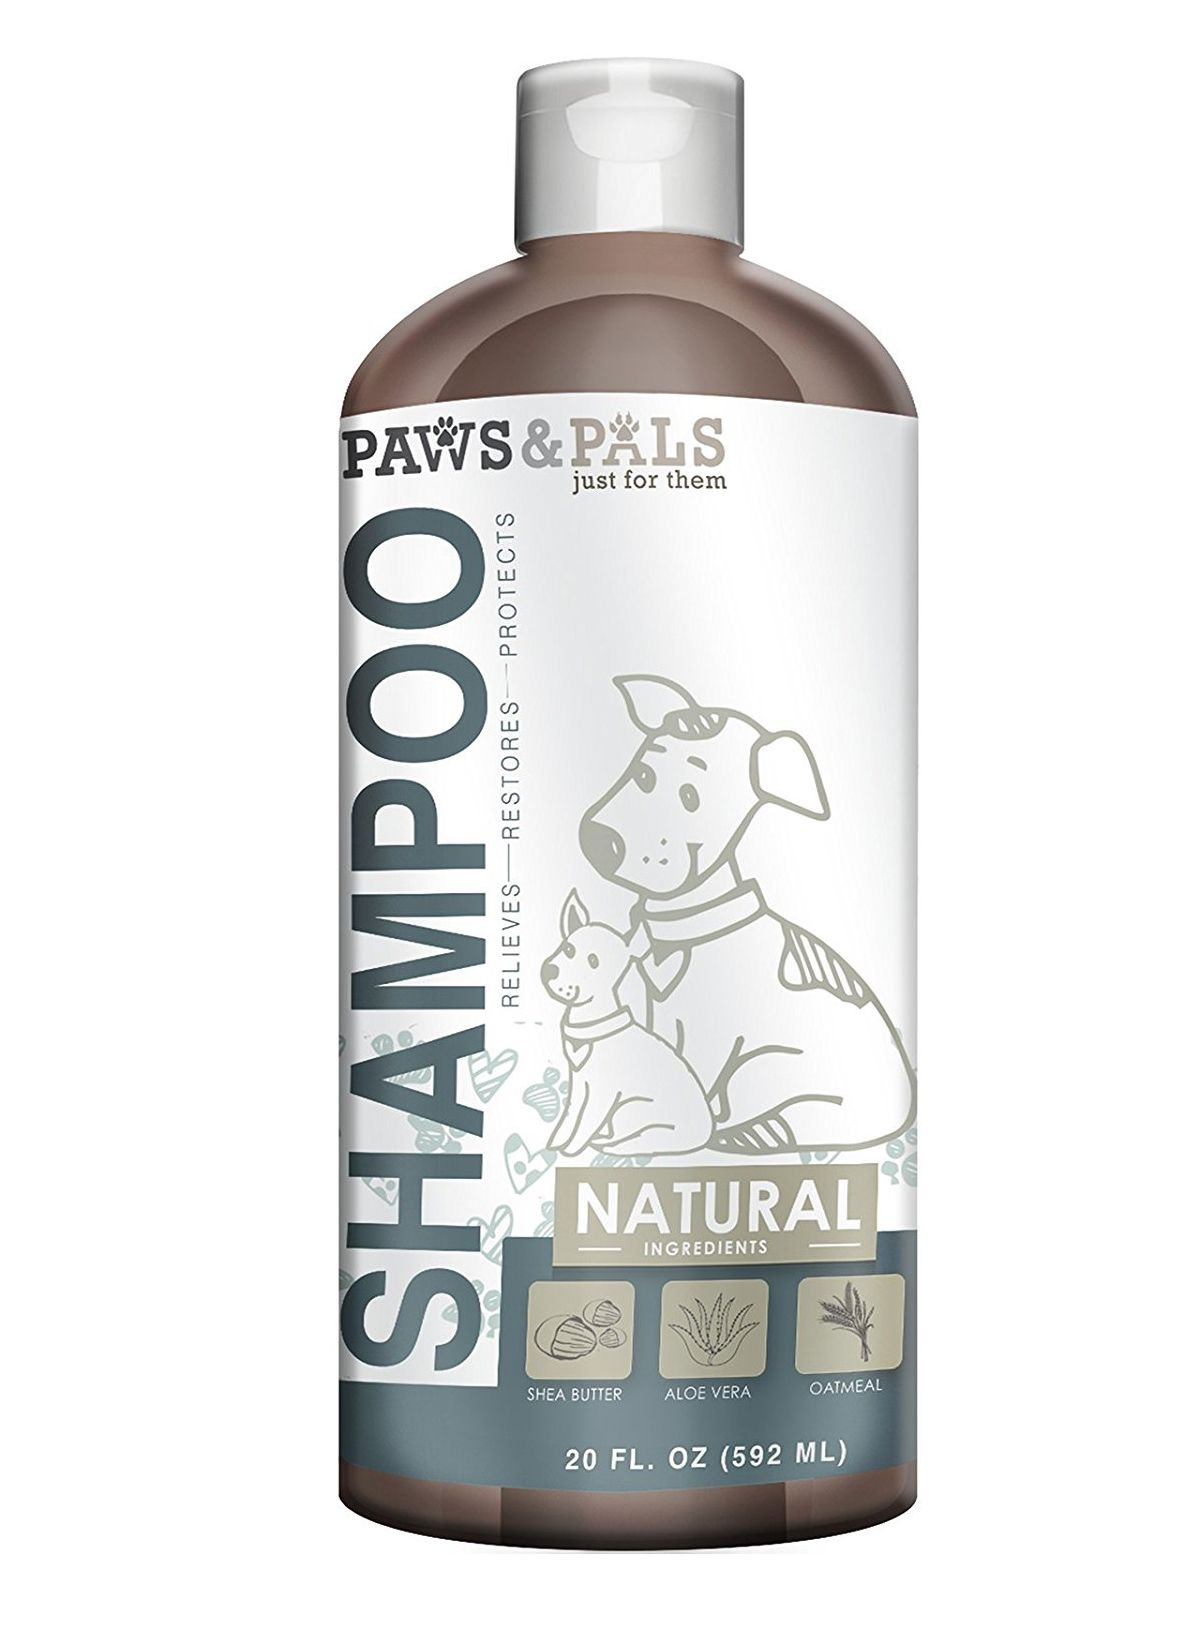 Best Shampoo For Goldendoodle Puppy Top 5 Picks In 2021 Natural Dog Shampoo Dog Shampoo Pet Shampoo